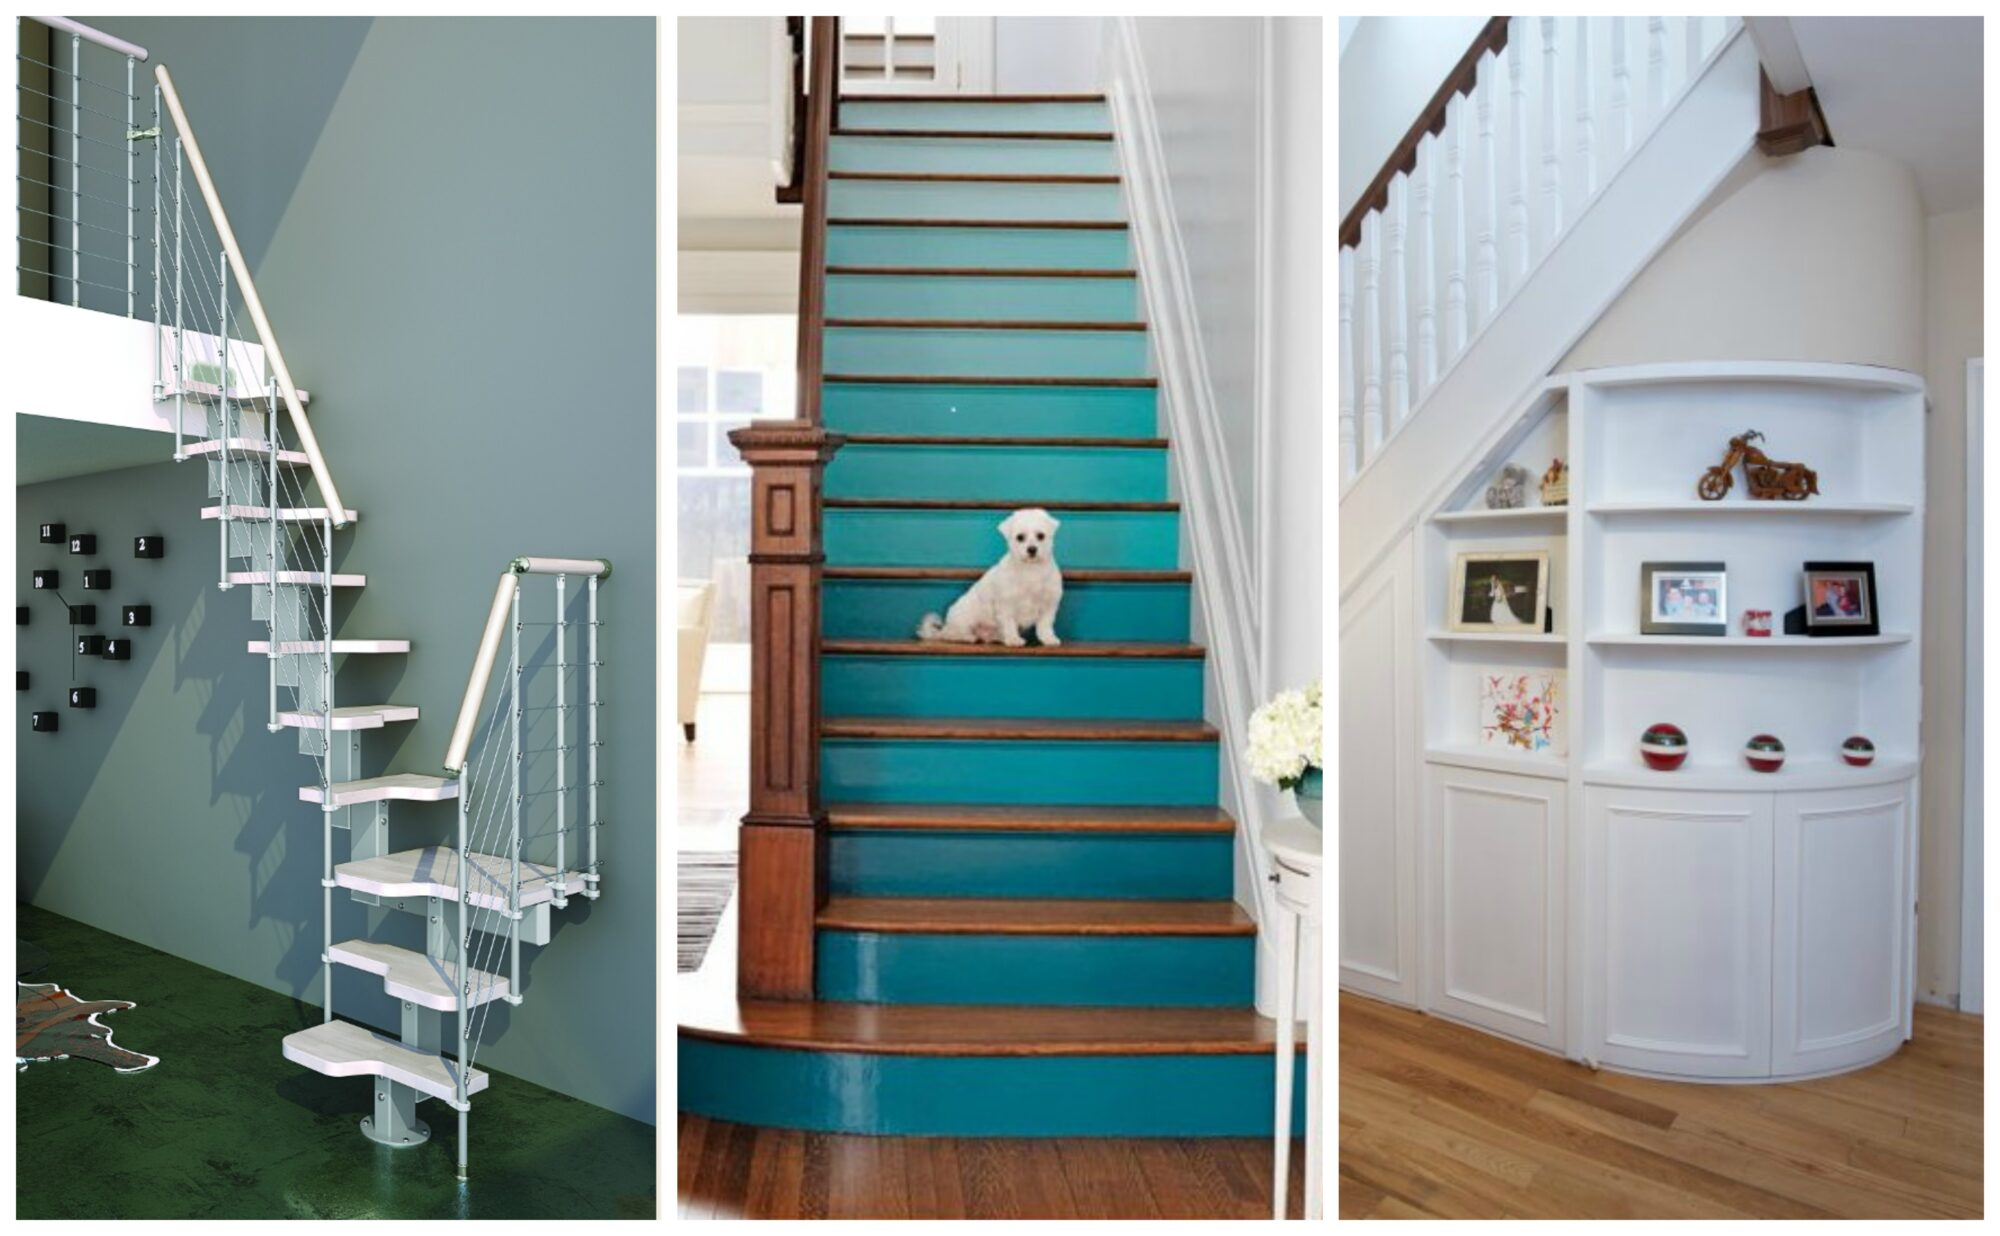 George Quinn Stair Parts Plus - Staircase Design Trends 2017